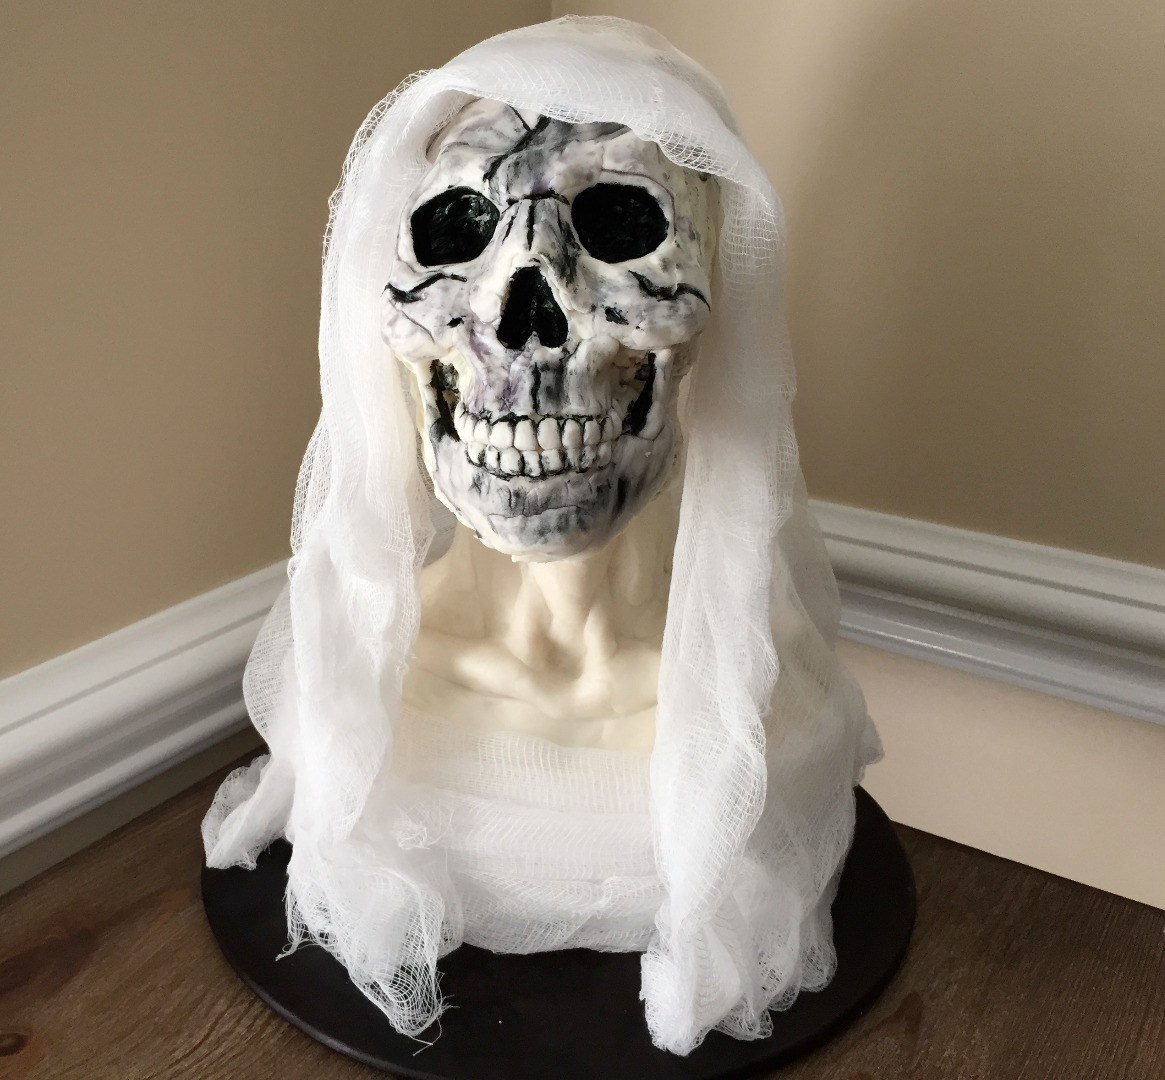 Picture of Rice Krispies Sculpting: Day of the Dead Virgin Mary Bust